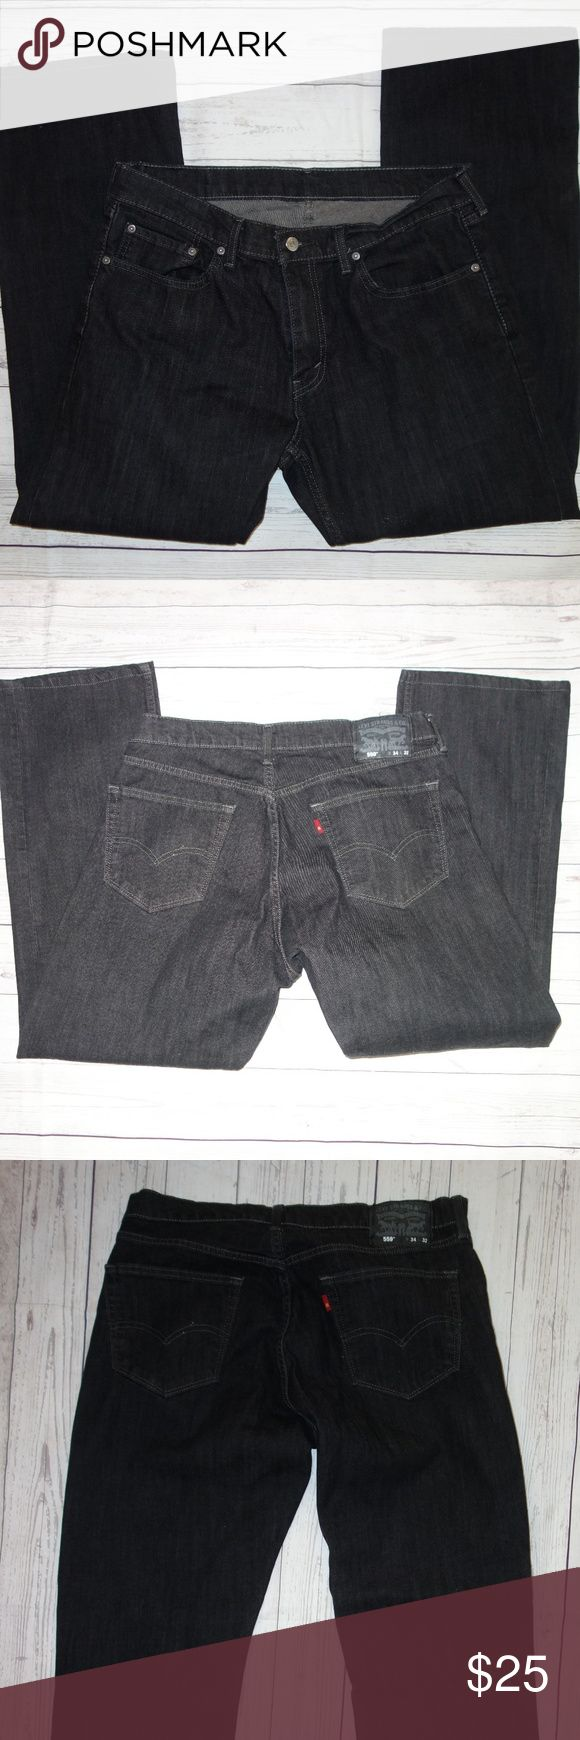 Levis 559 Jeans Men 34 32 Classic Straight Leg Levis 559 Jeans Men 34 32 Classic Straight Leg Graphite Gray Dark Preowned in great condition Looks black but is actually a very dark graphite gray Classic 5 pocket styling  Button and zip fly waist is 34 Inseam is 32 No rips, tears or stains Look like new I have other items like this listed Thank you for looking! Levi's Jeans Straight